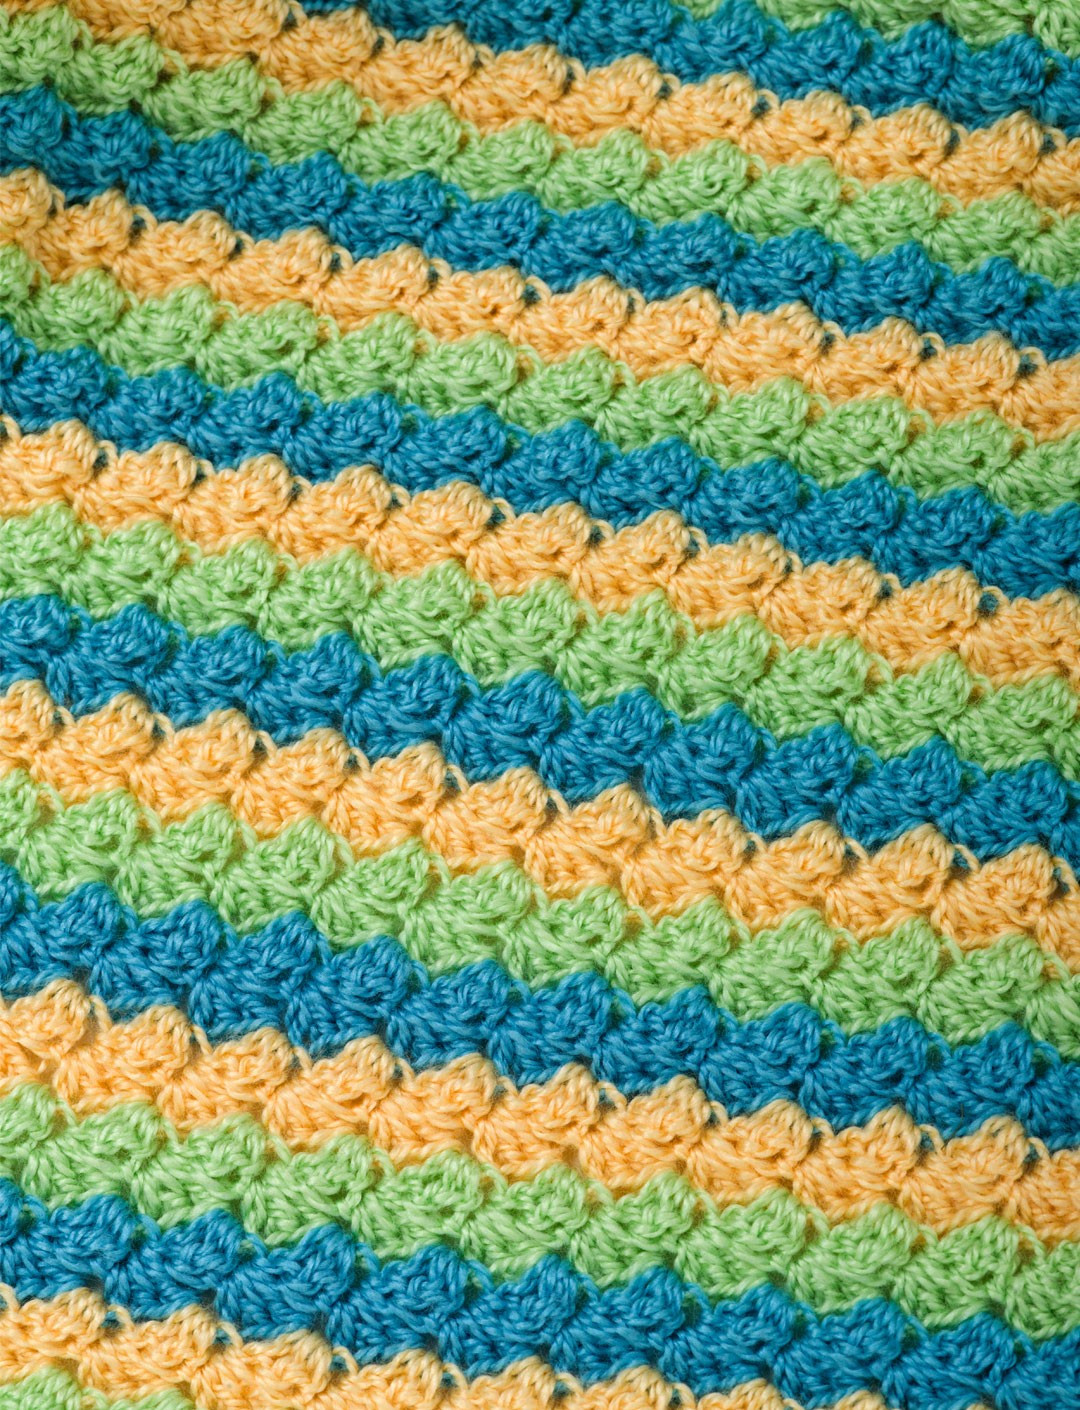 Best Of Caron soft Shells Baby Blanket Crochet Pattern Caron Crochet Patterns Of Perfect 43 Pictures Caron Crochet Patterns